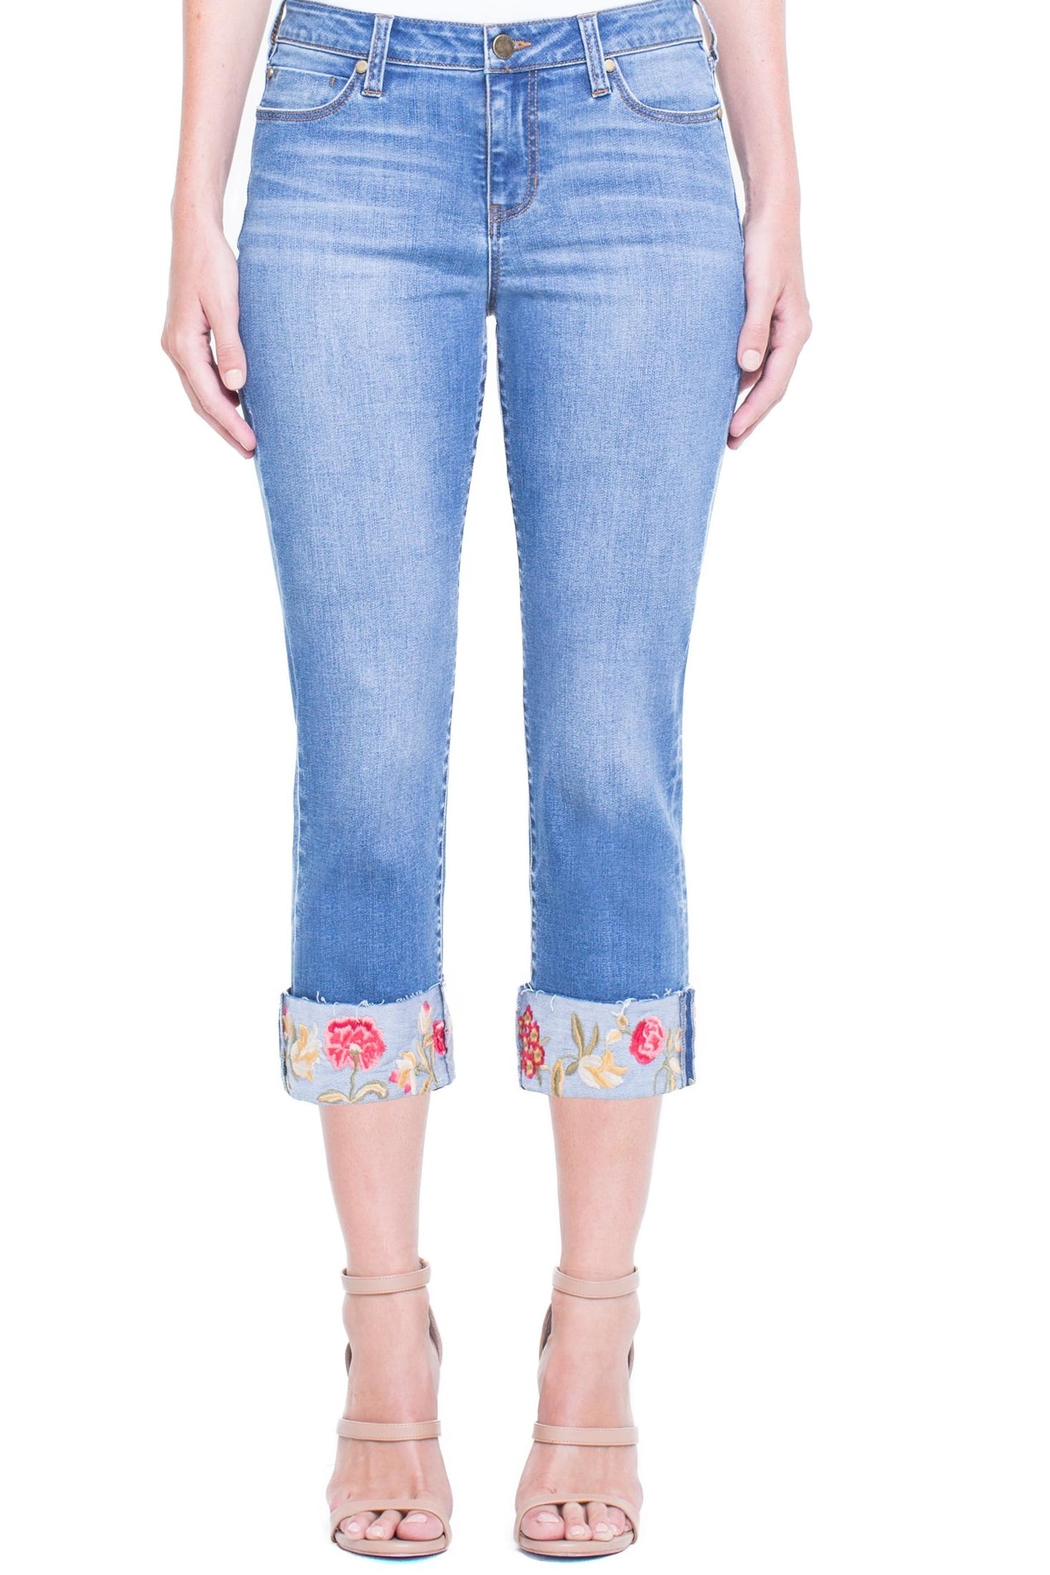 Liverpool Jean Company Floral Cuffed Jeans - Main Image